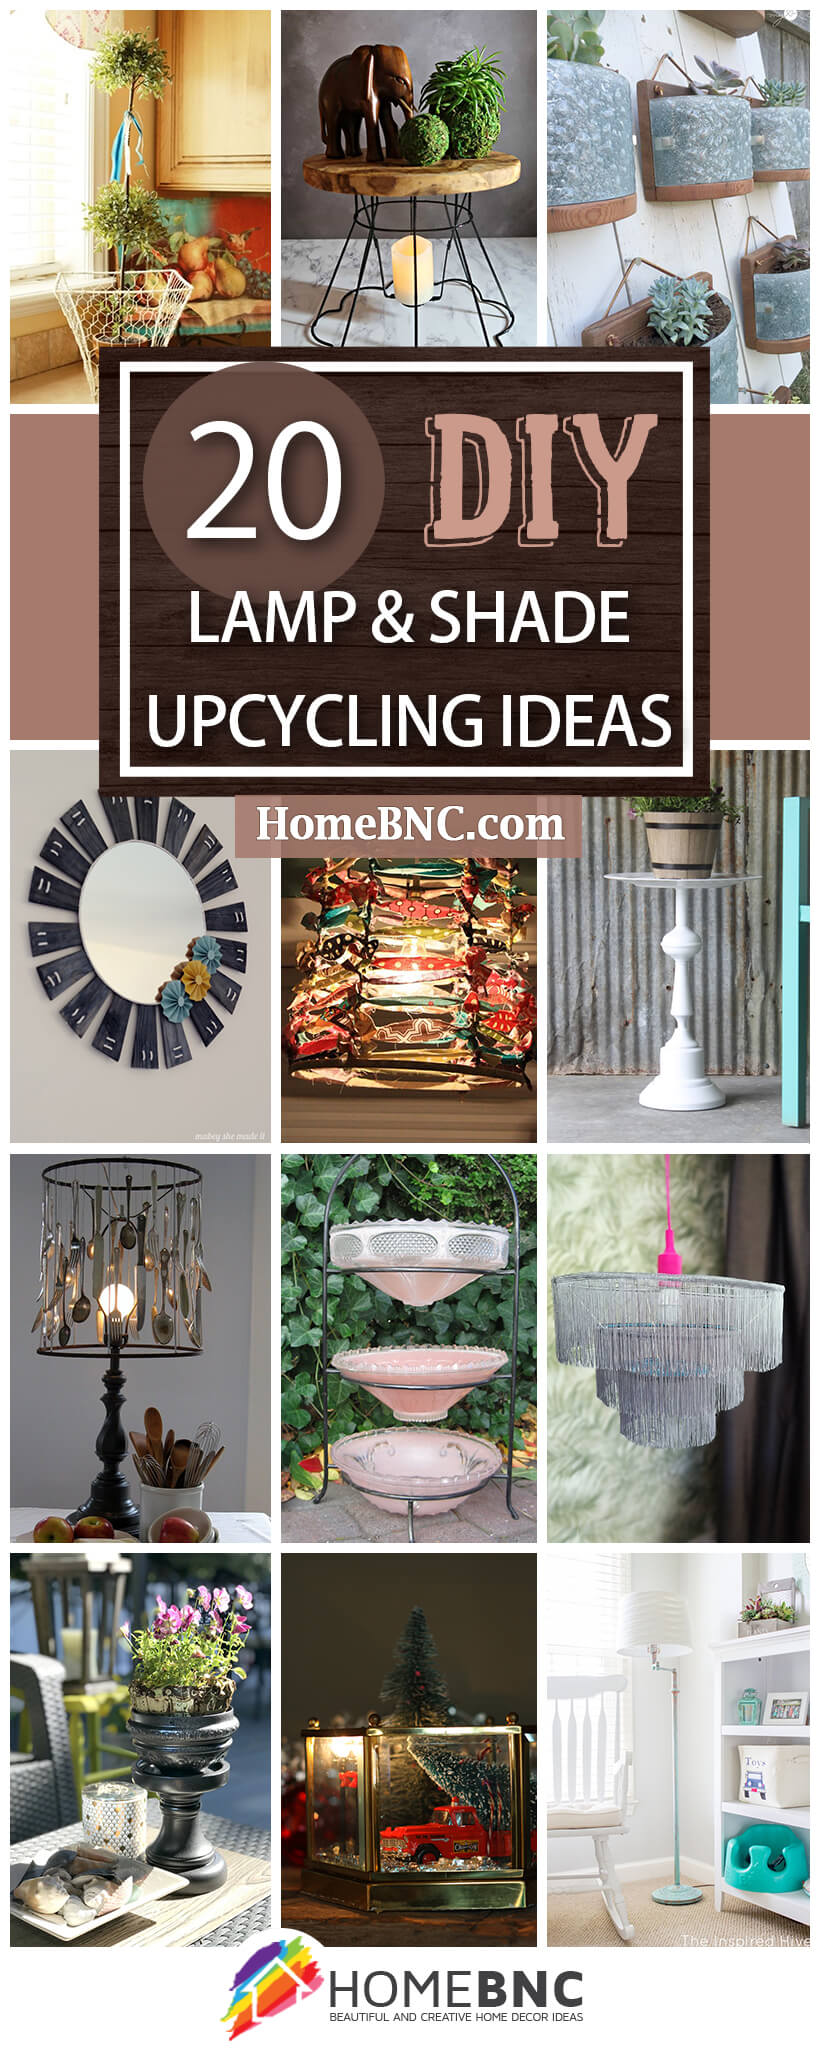 20 Best Upcycling Ideas For Lamps And Lamp Shades In 2020